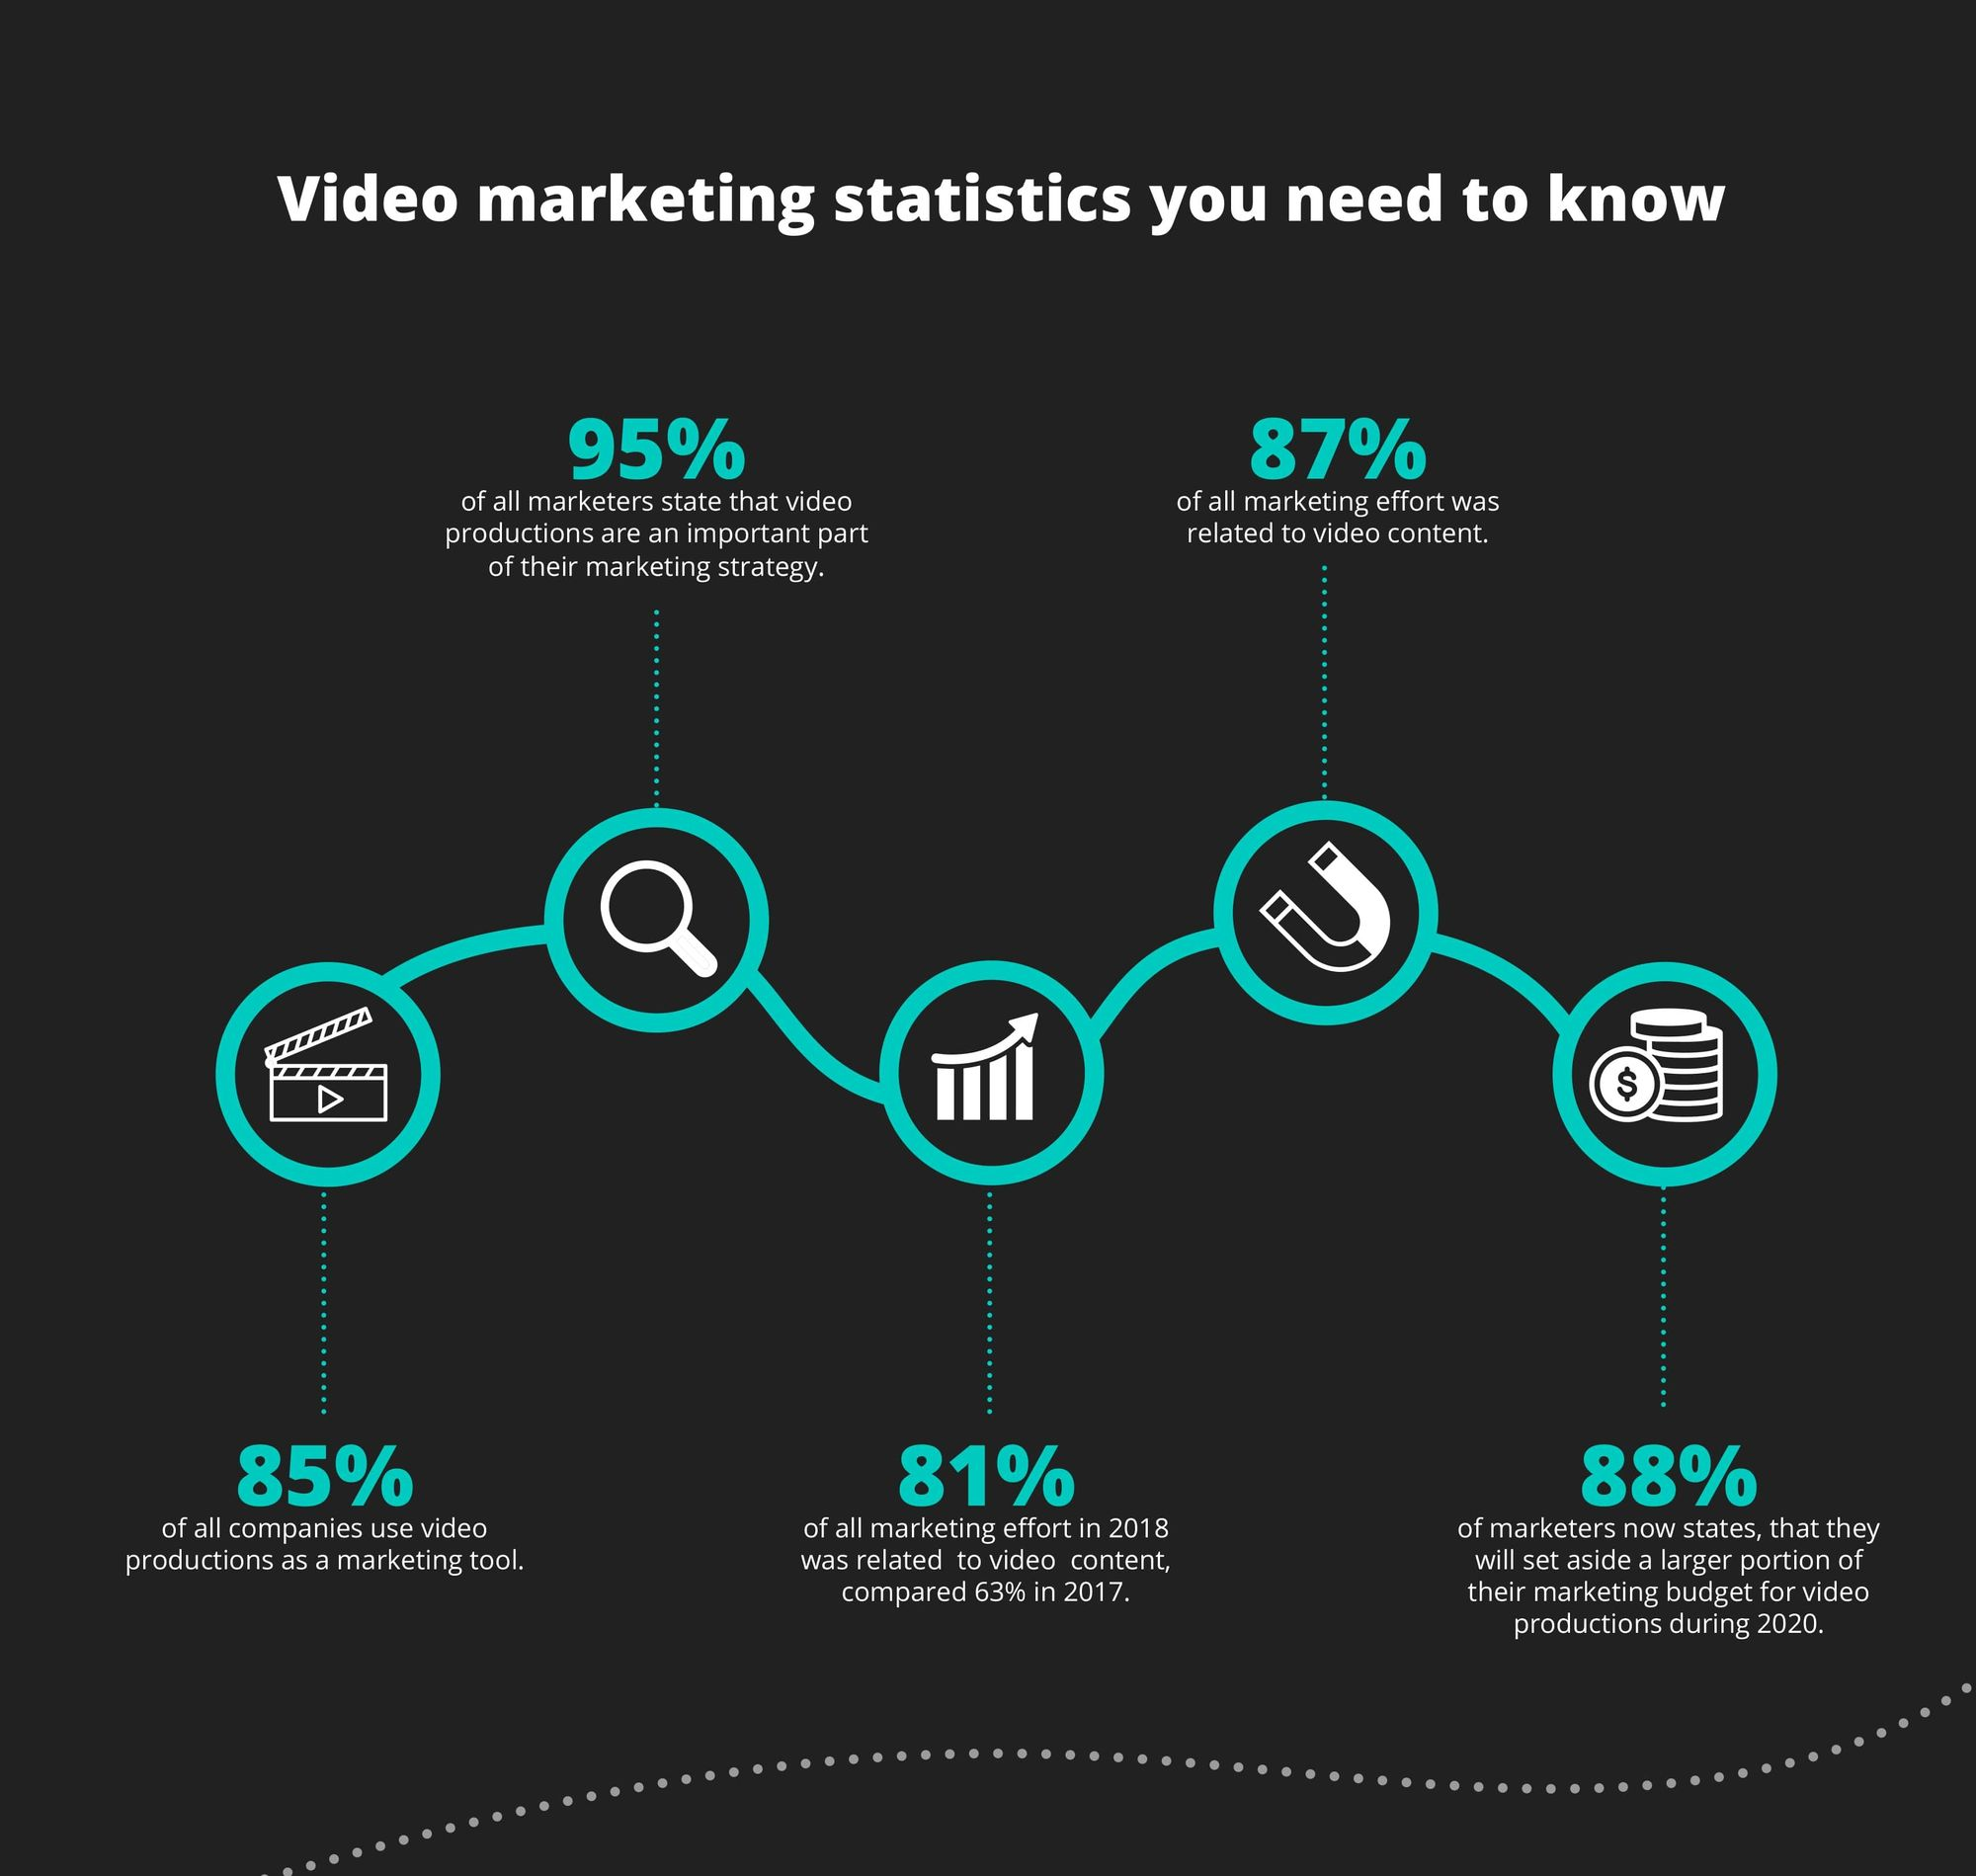 Important video marketing statistics